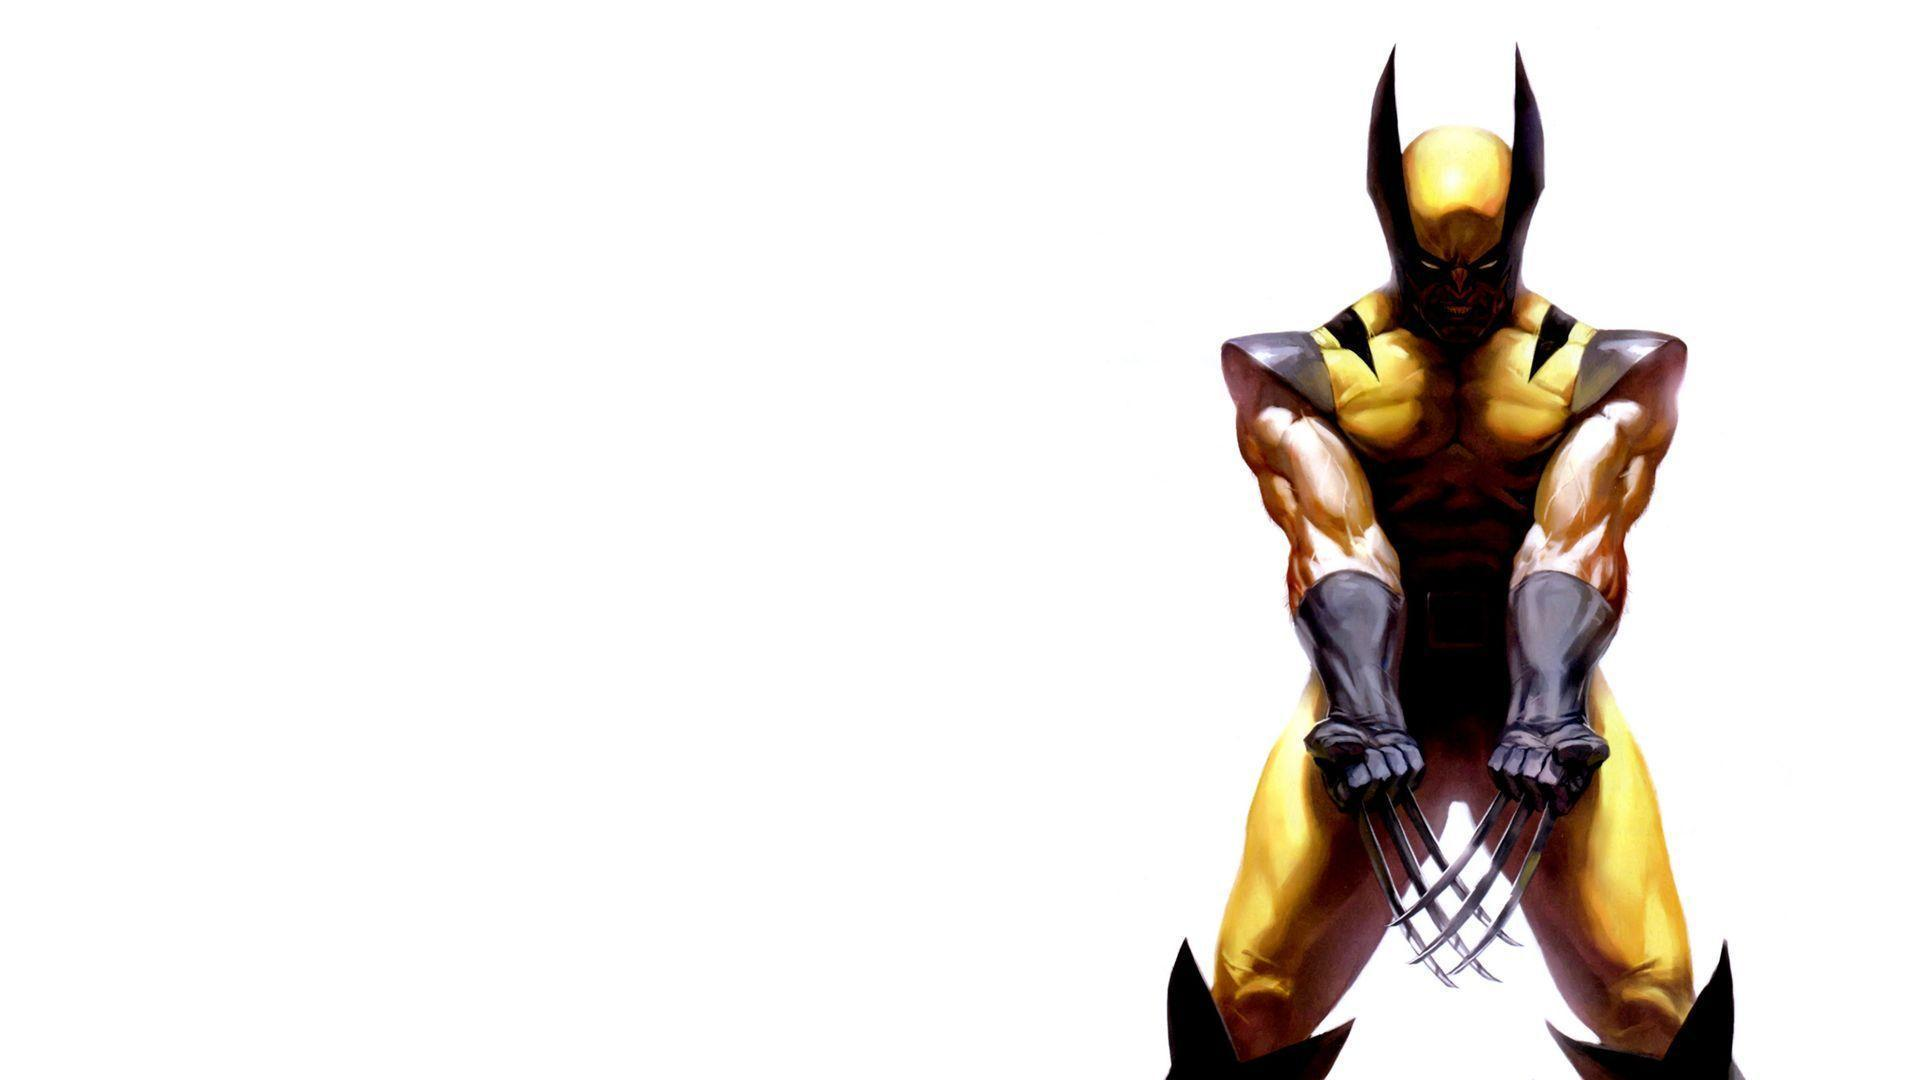 Wolverine HD wallpaper - known as Logan in the Marvel Comics